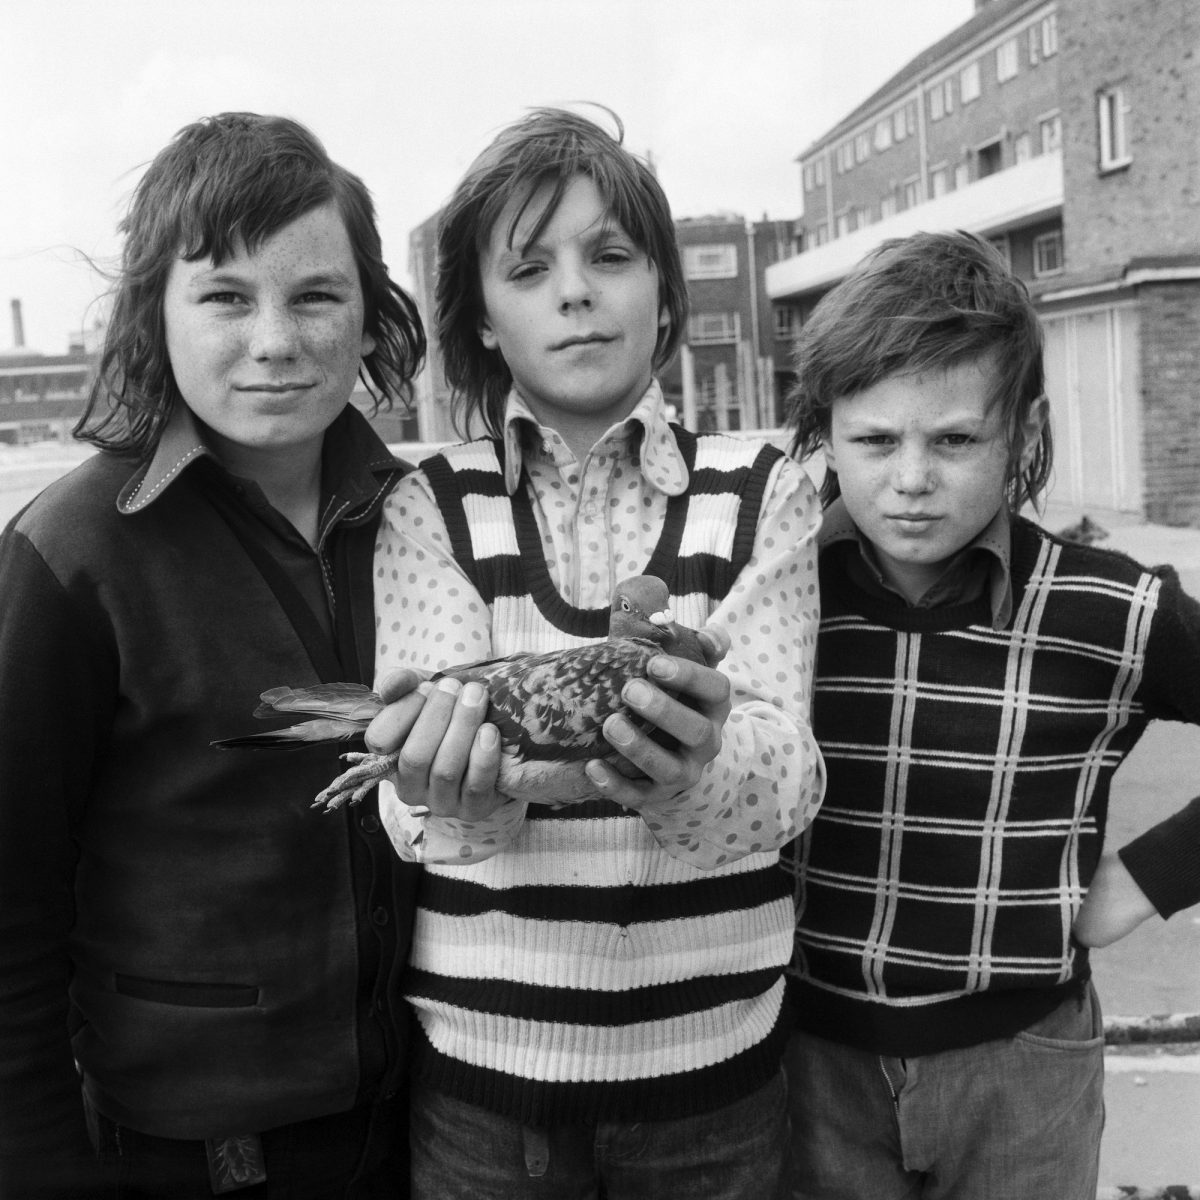 John Payne, aged 12, with friends and his pigeon Chequer. From the Free Photographic Omnibus. Portsmouth, Friday 26 April 1974.